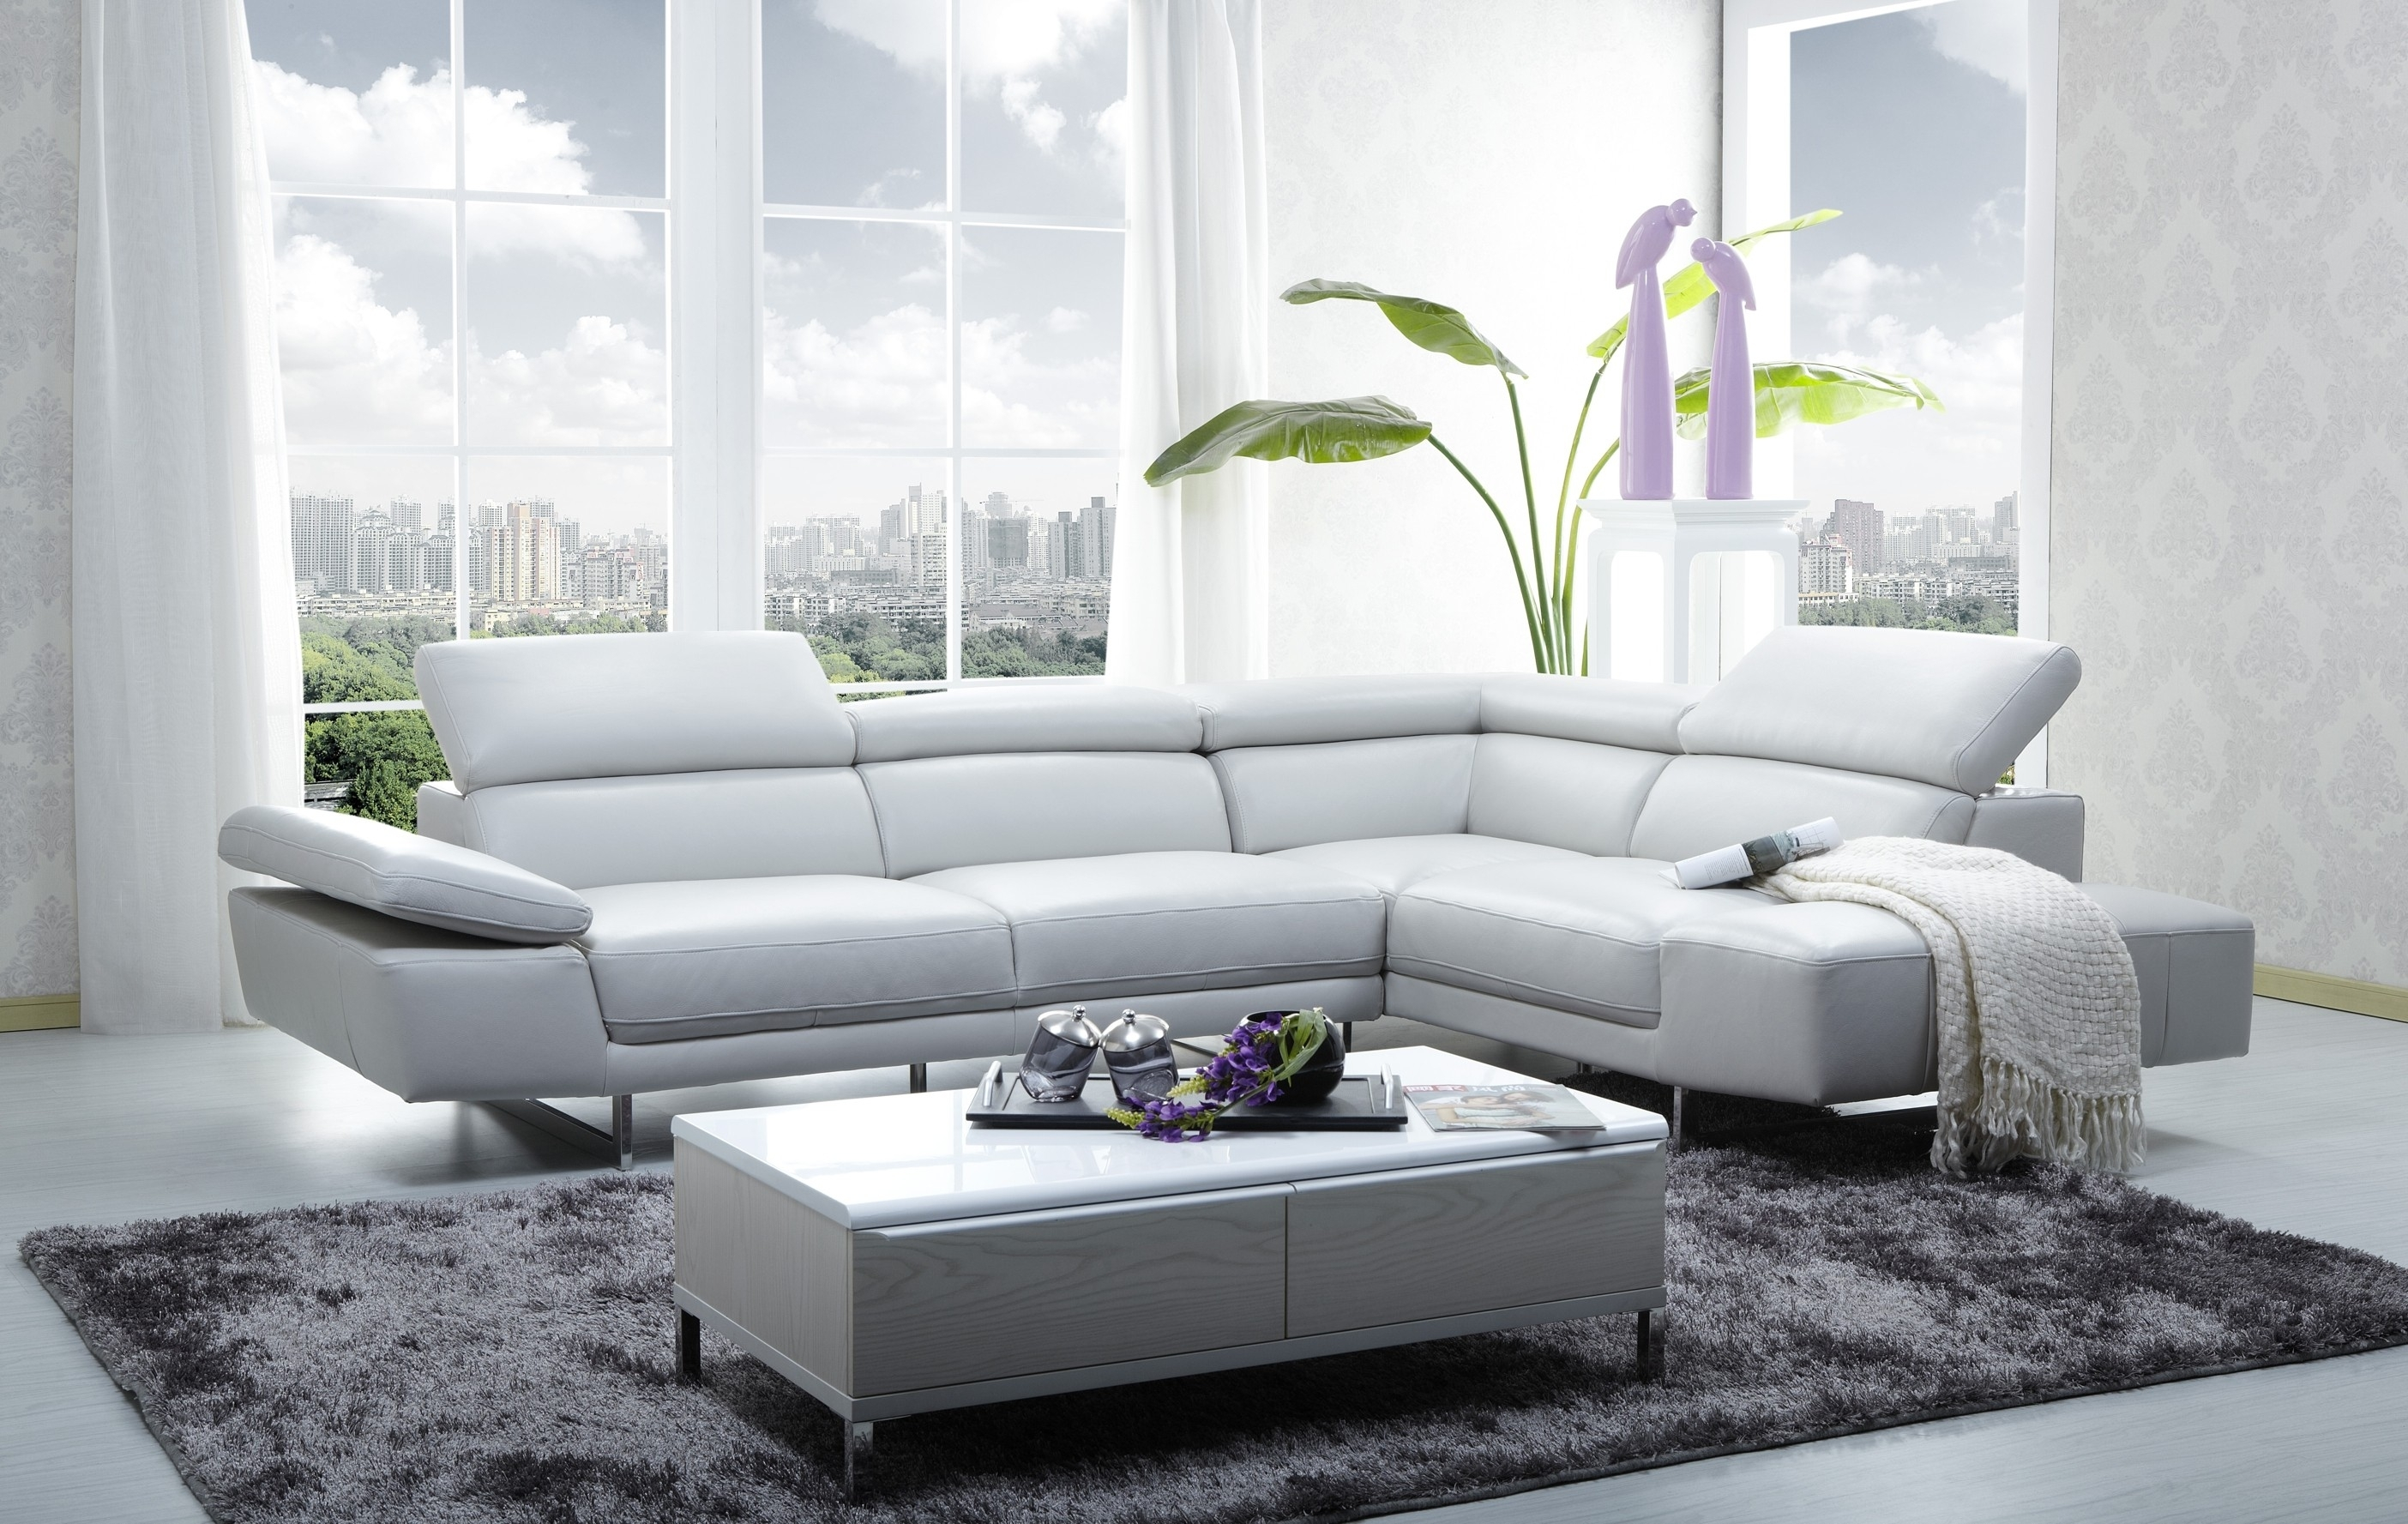 1717 Italian Leather Modern Sectional Sofa pertaining to Sectional Sofas in Stock (Image 1 of 10)